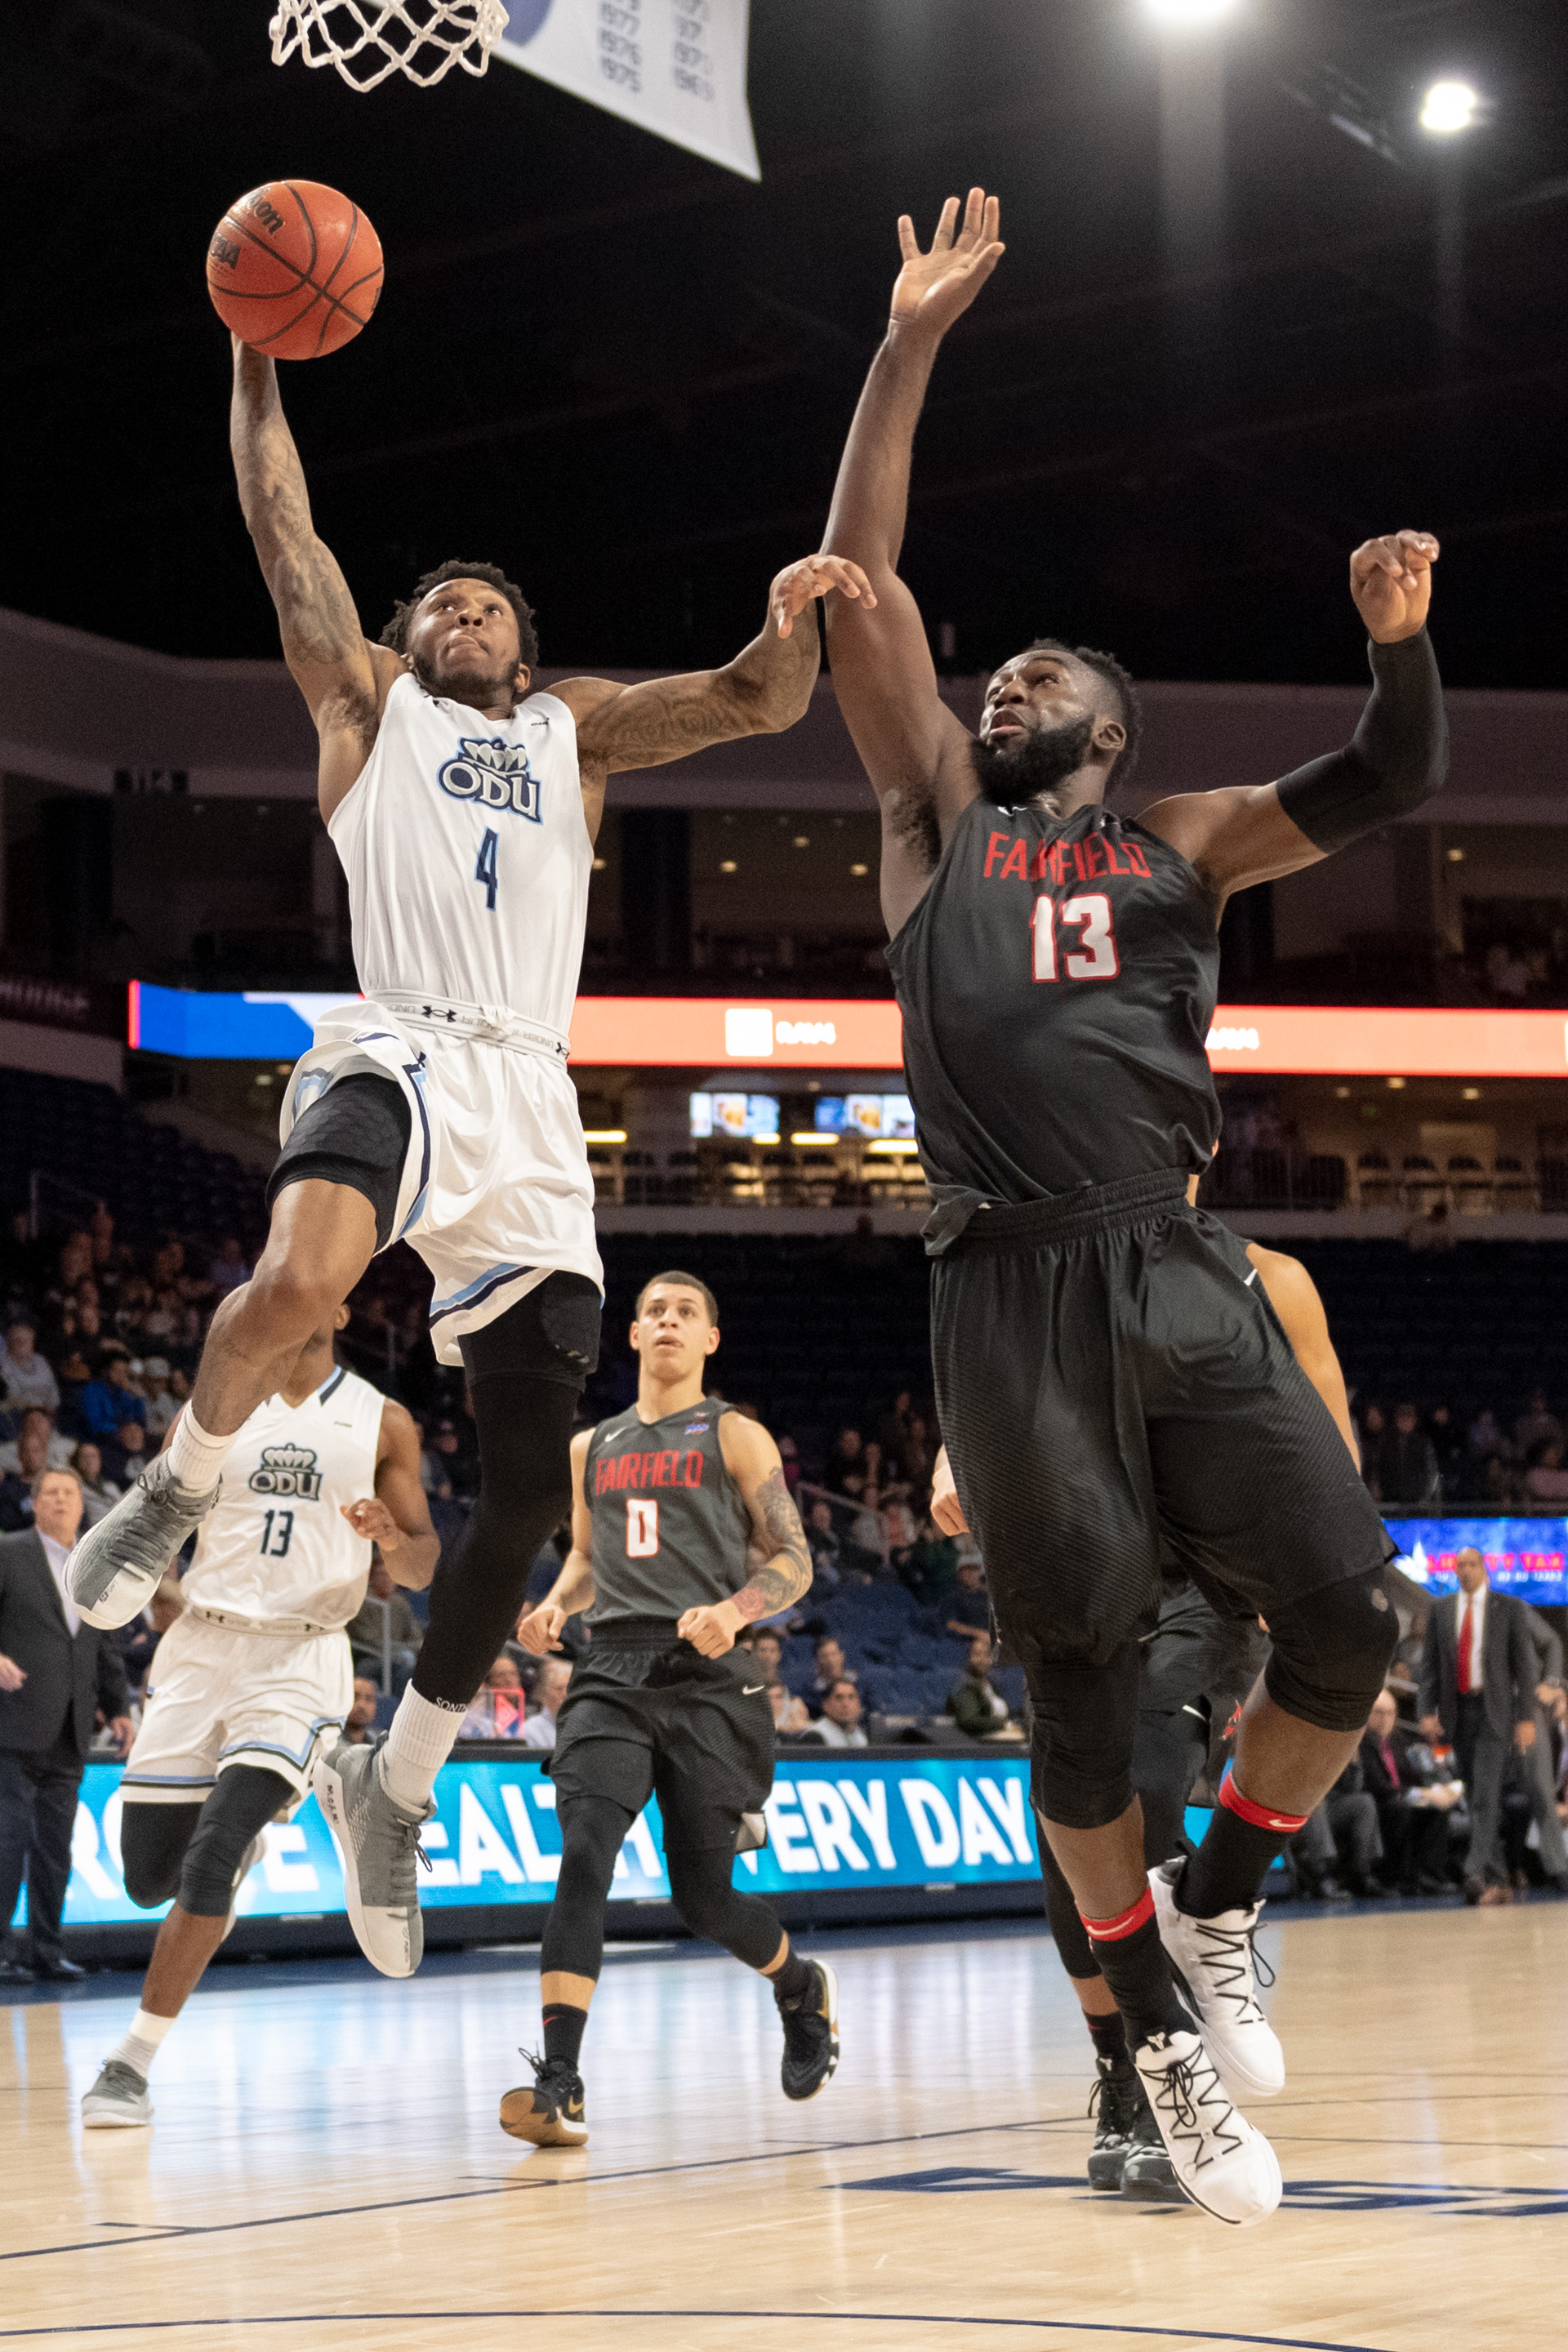 Basketball: Fairfield vs Old Dominion